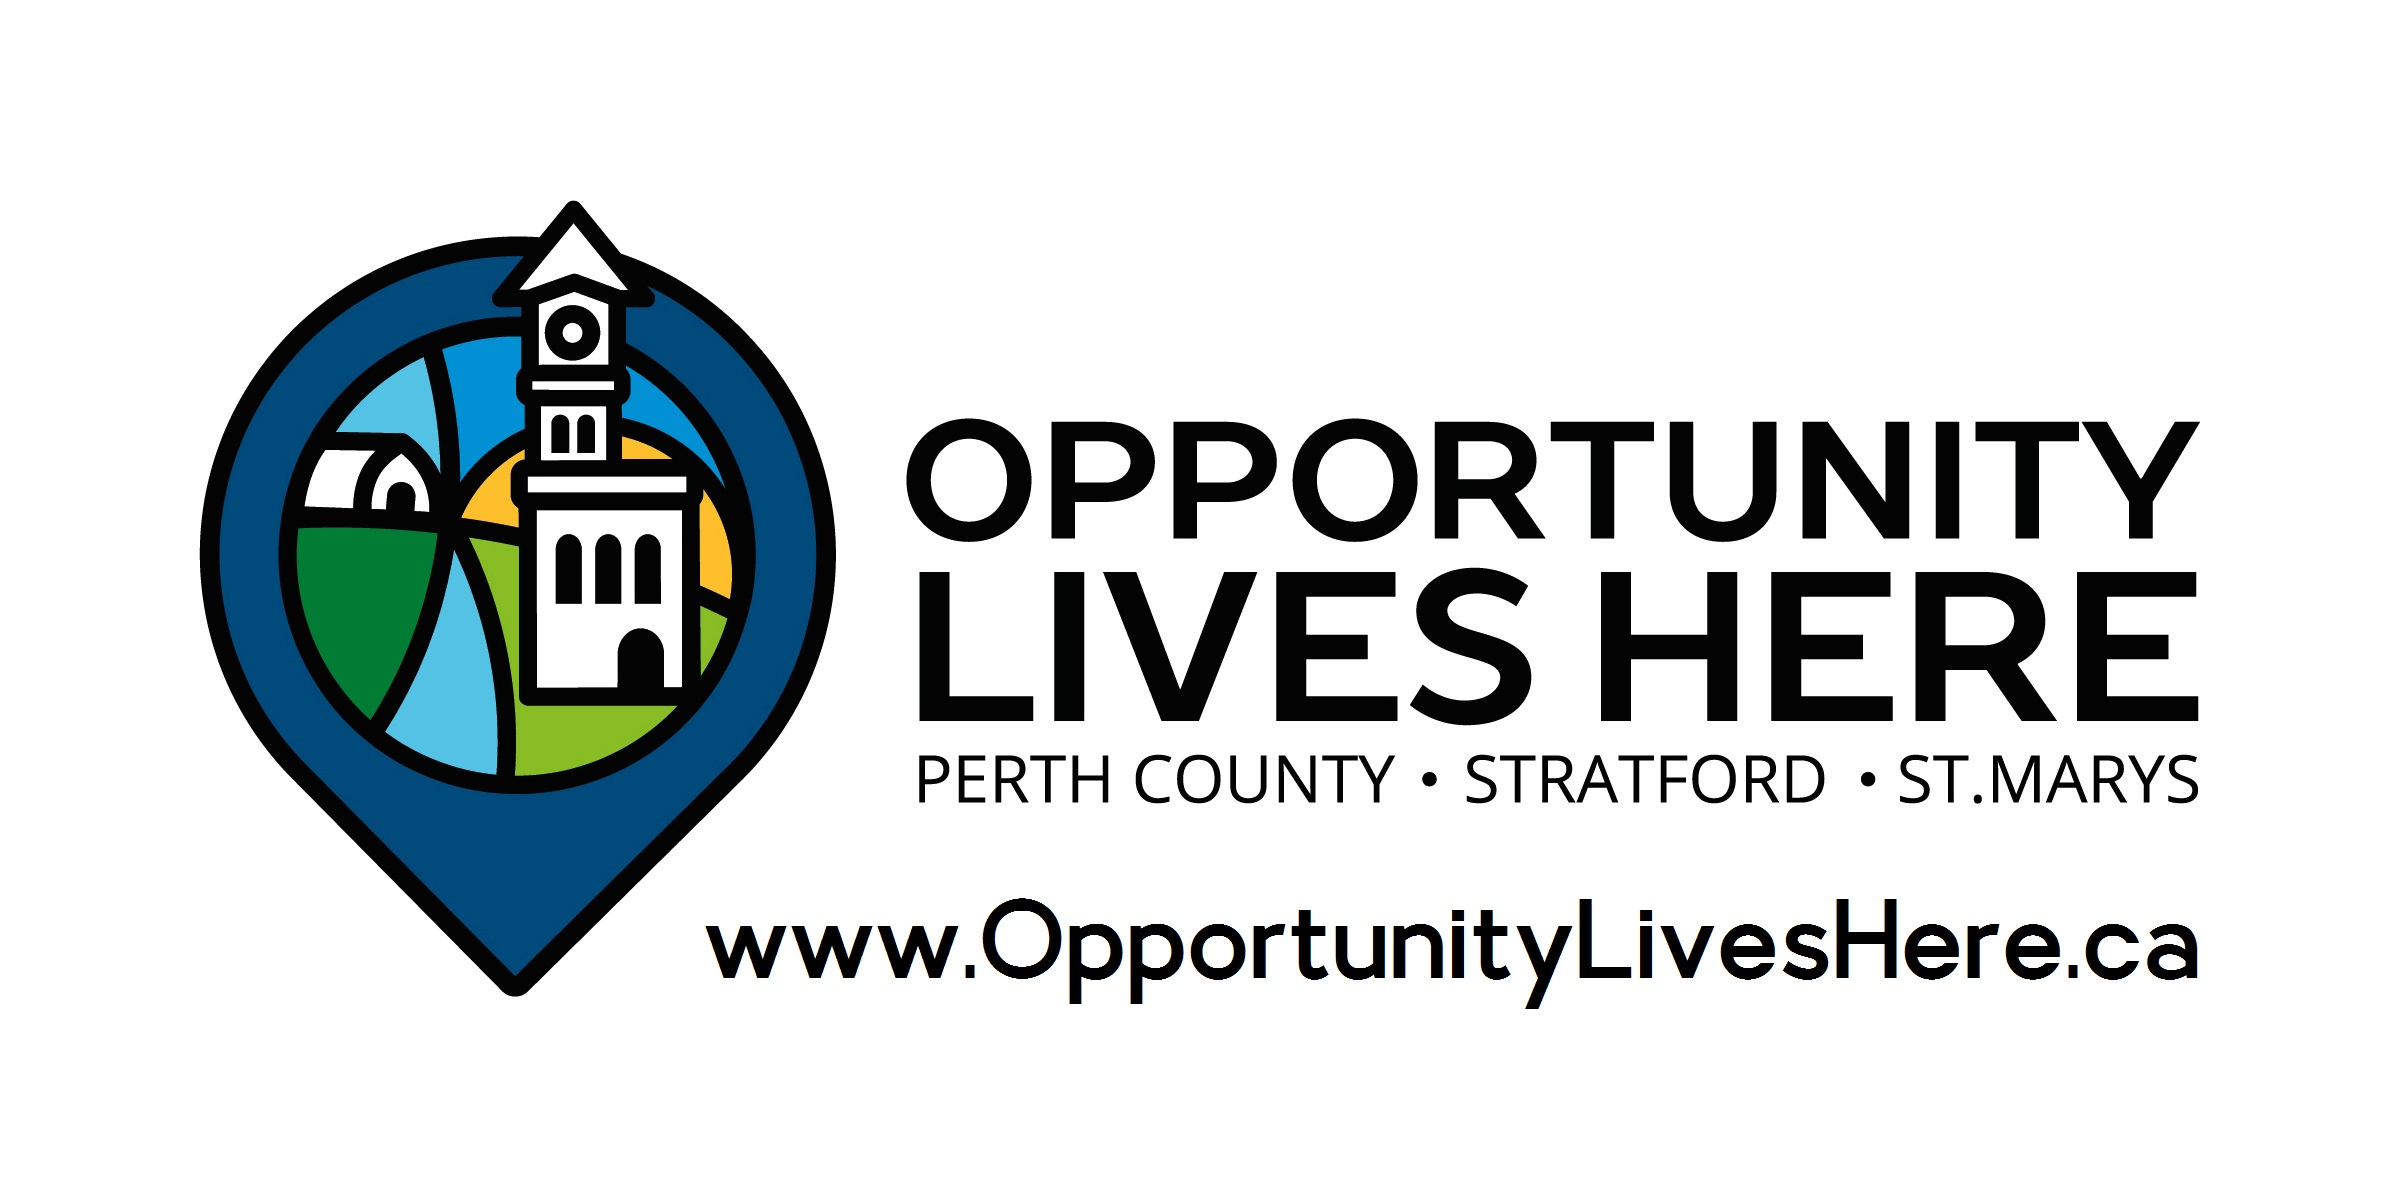 opportunity lives here logo